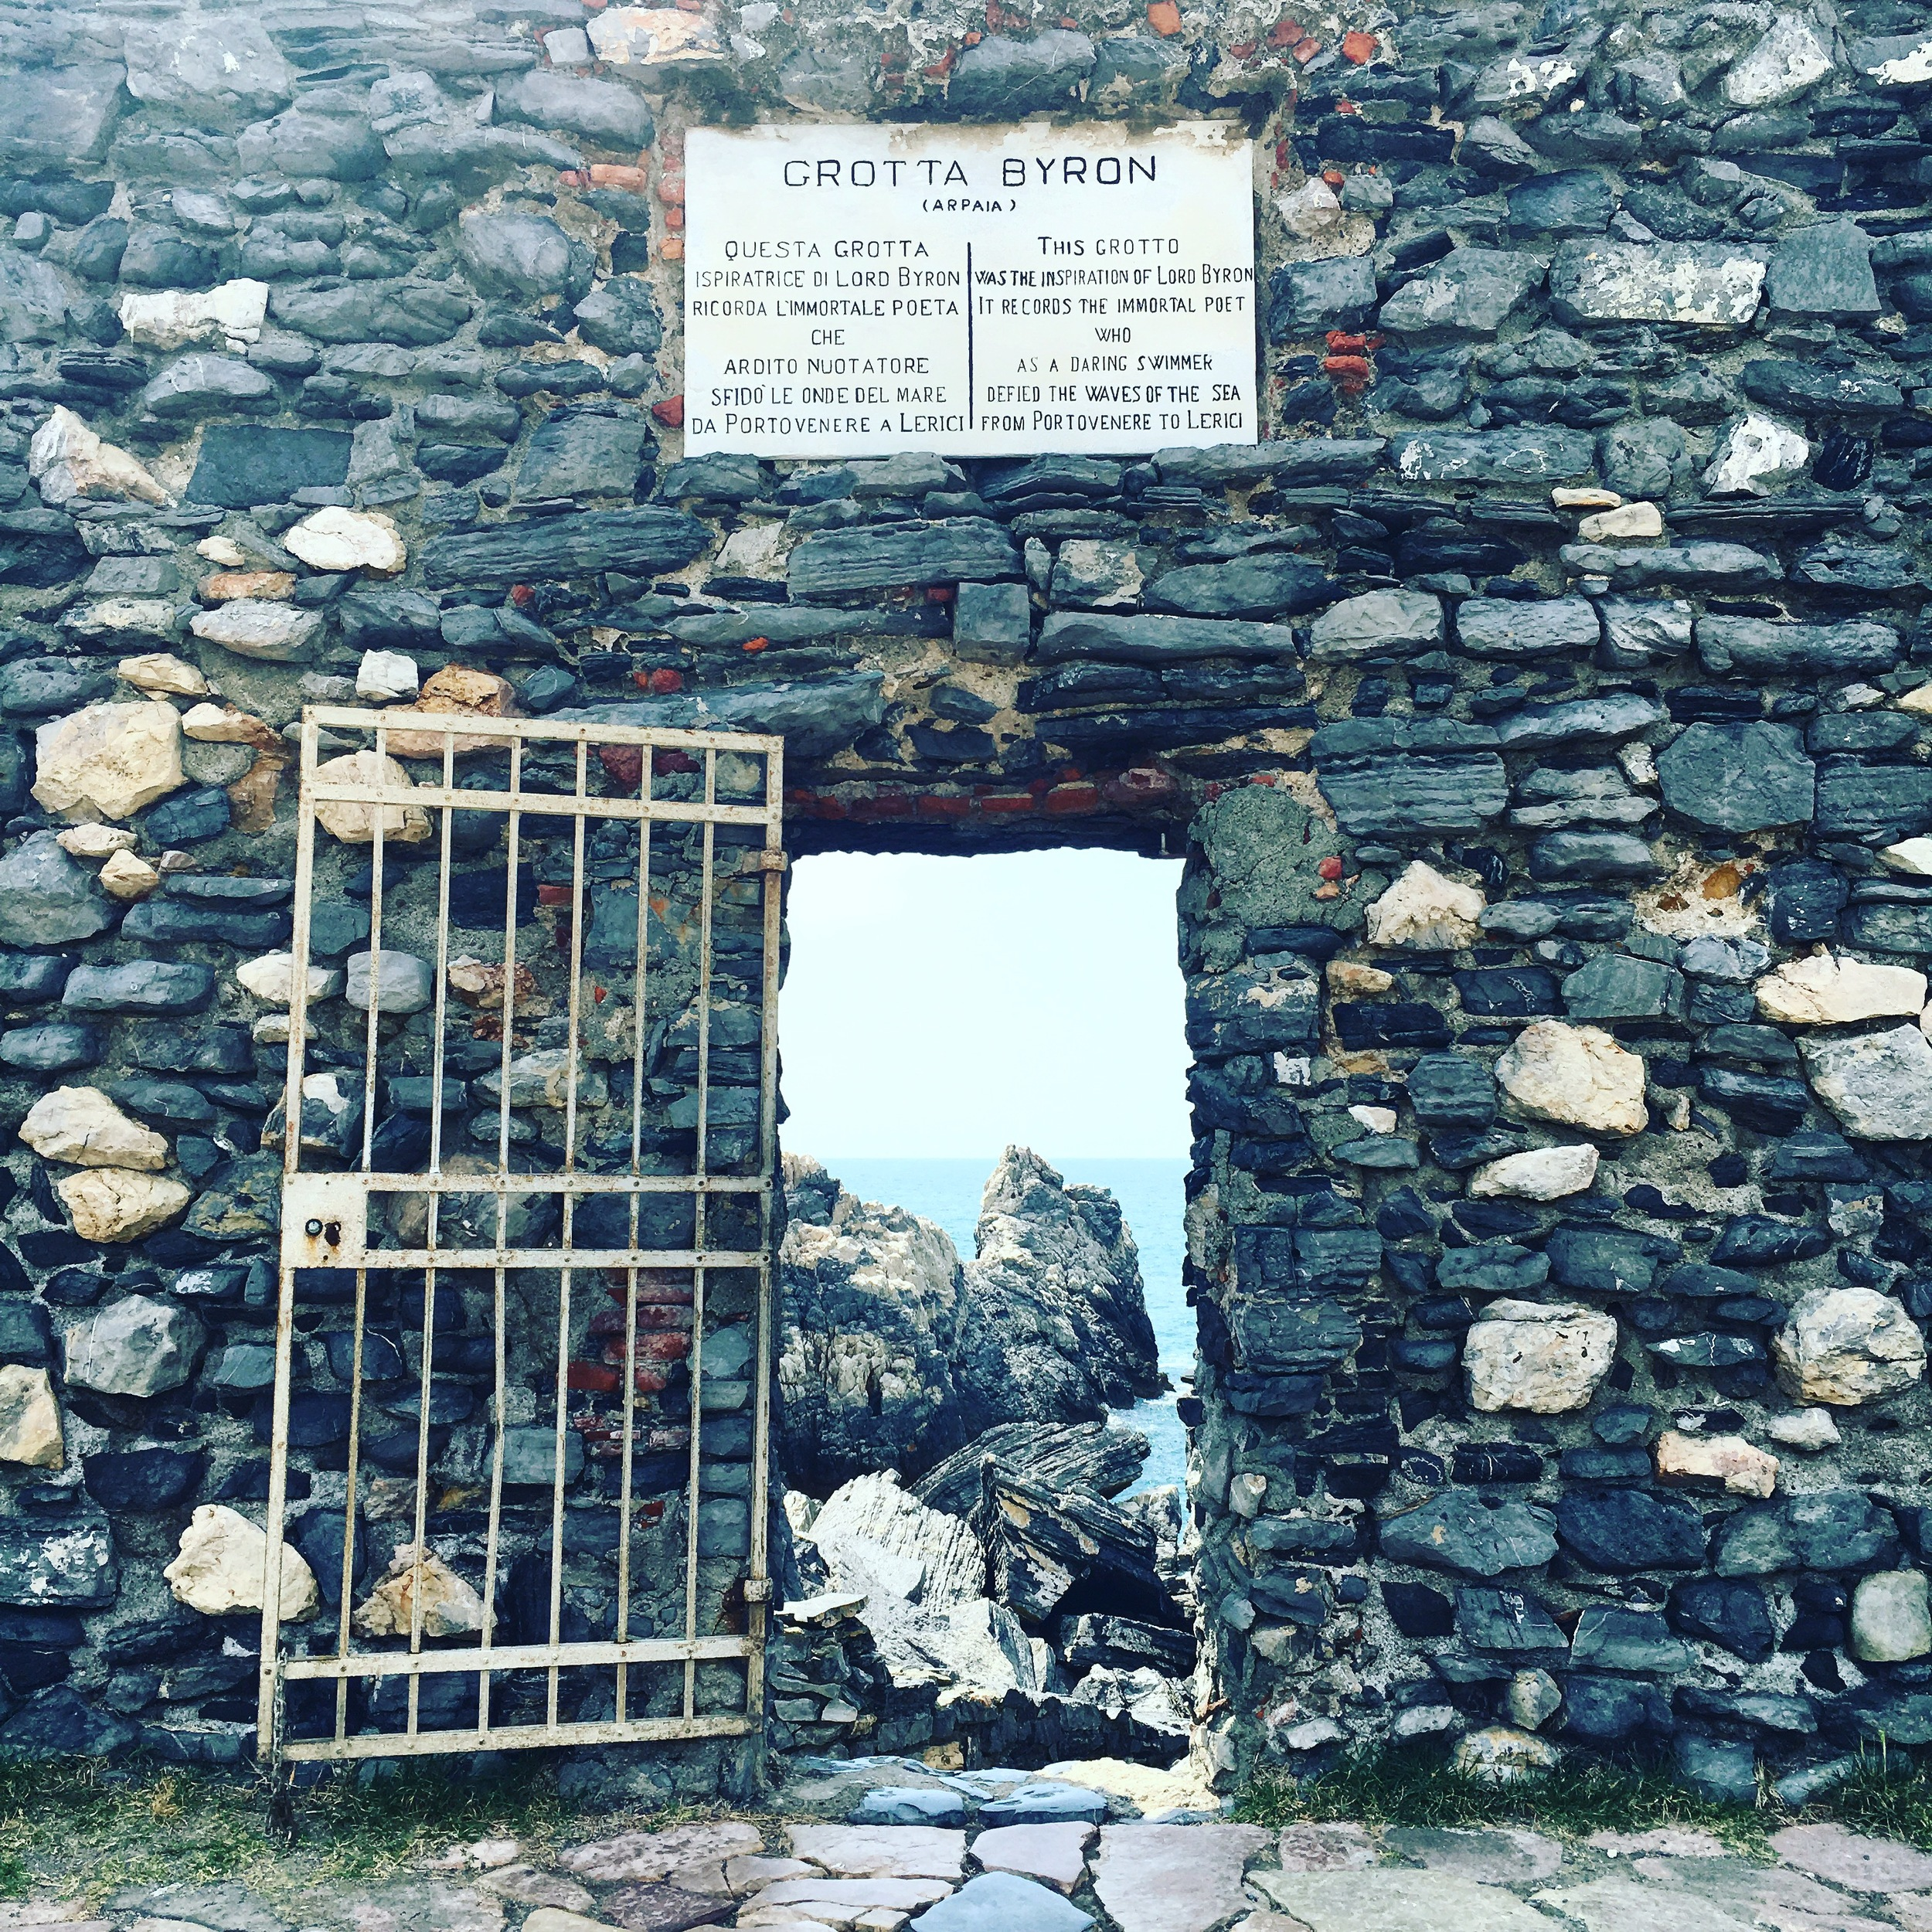 Byron's Grotto - supposedly one of his favourite spots in Liguria